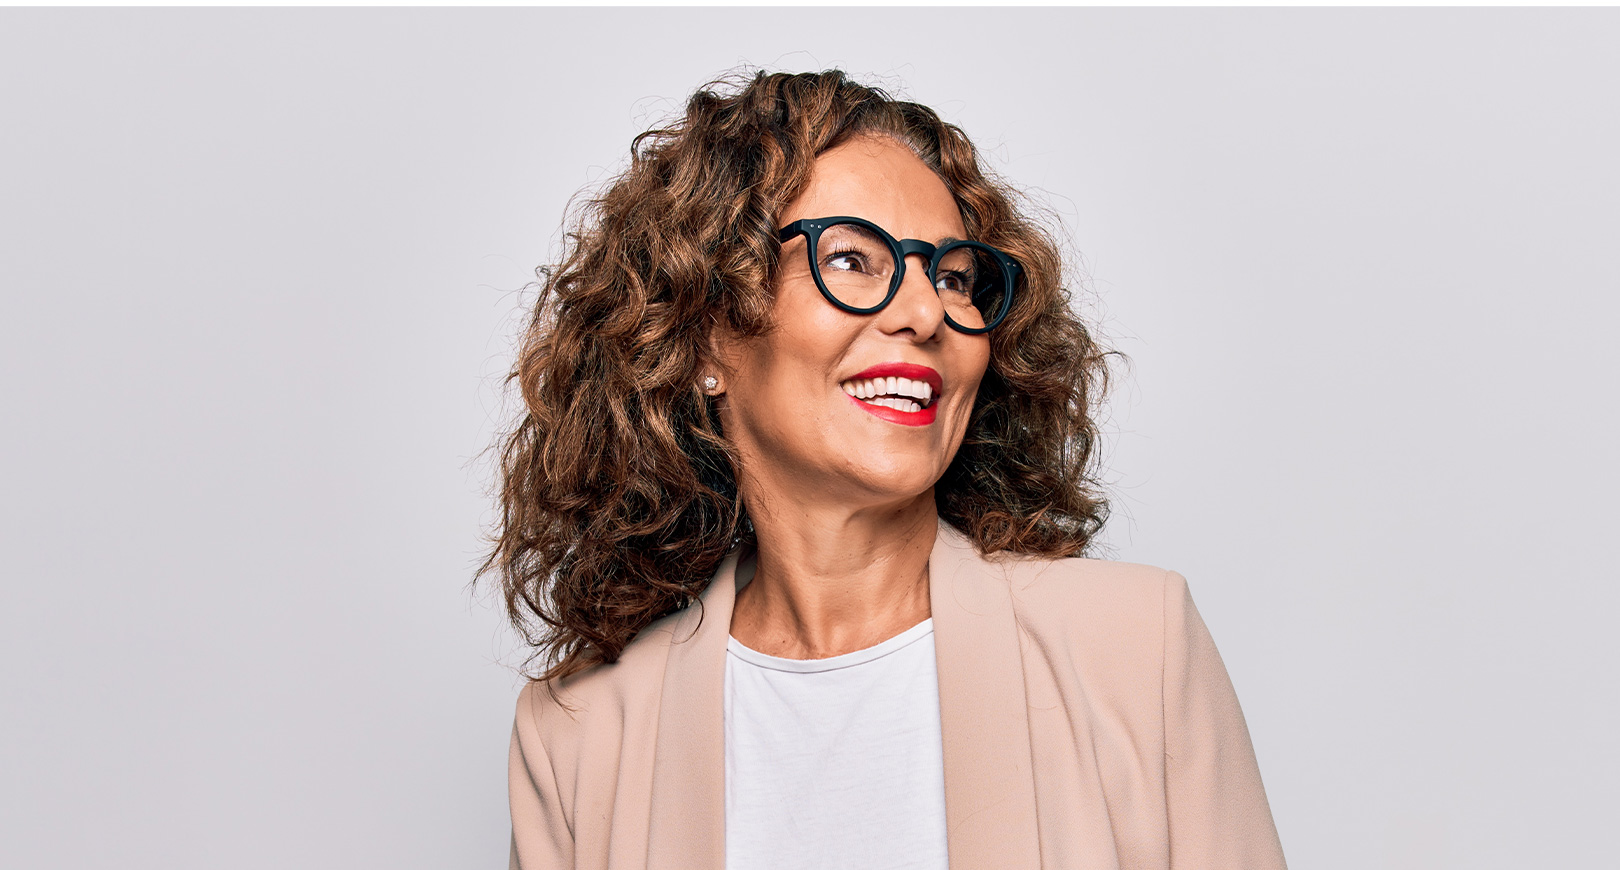 smiling woman wearing glasses gazing into the distance